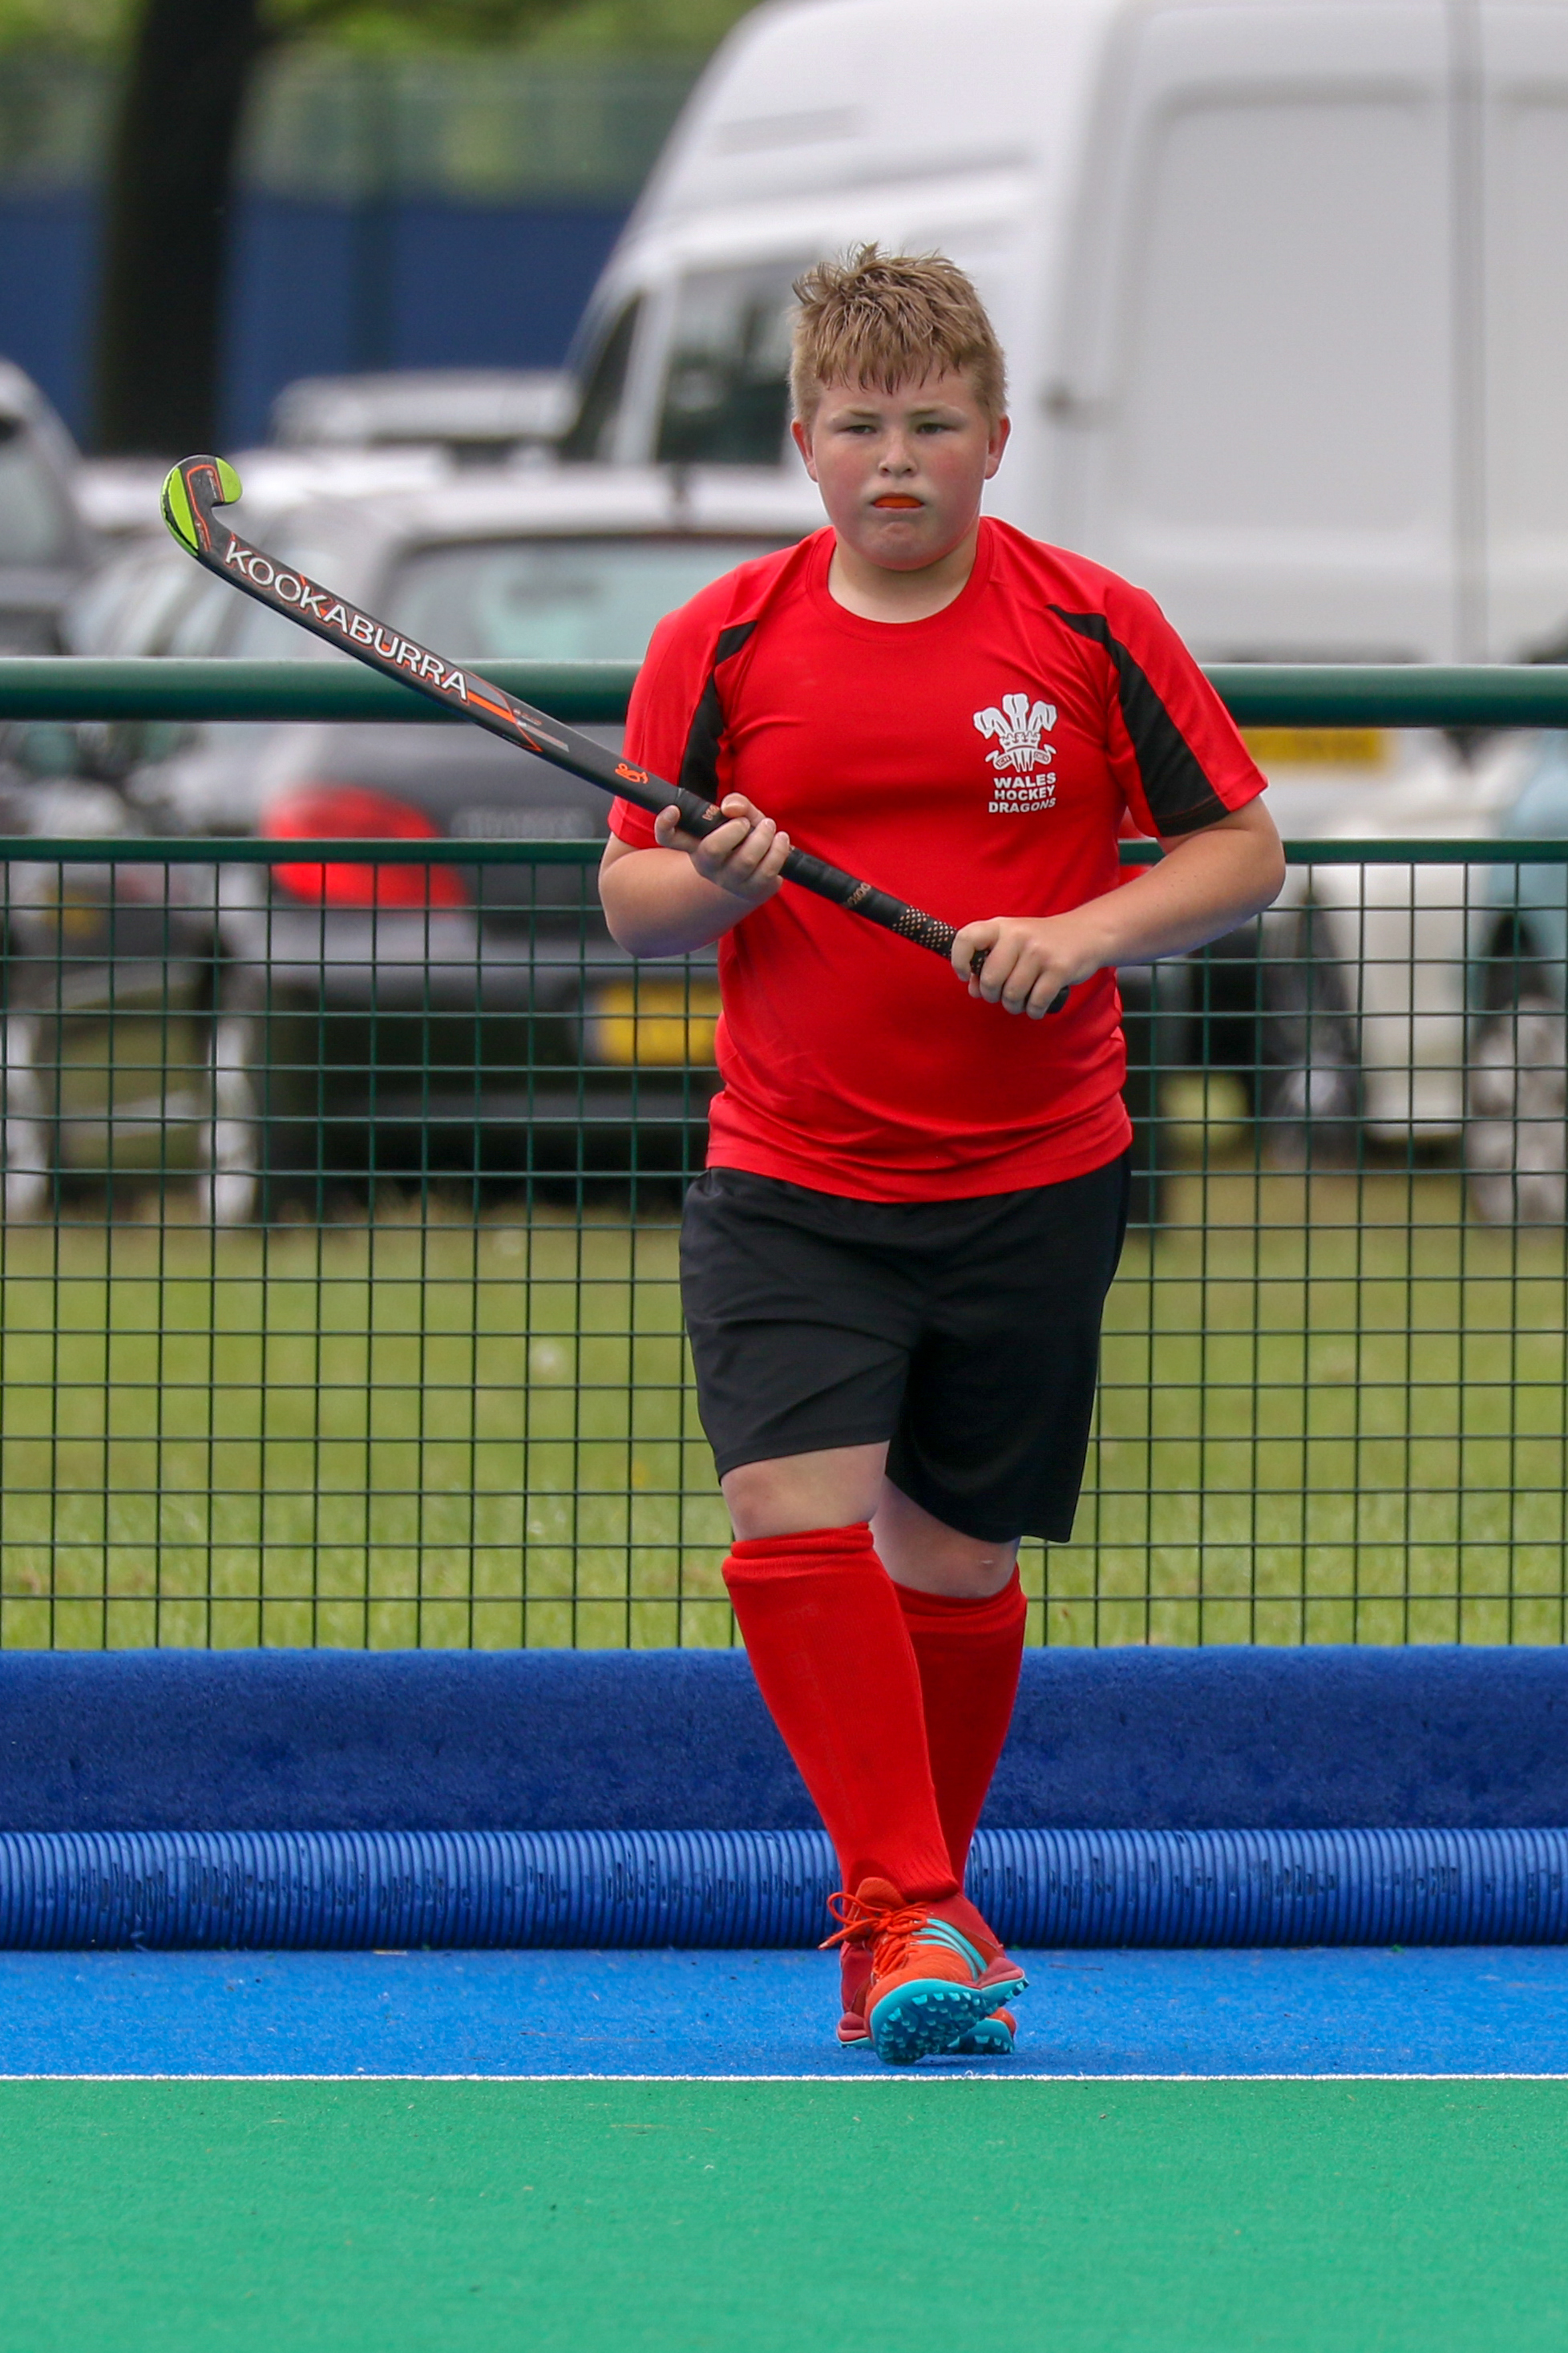 Toby Williams from Caersws was selected to represent under 13s Welsh Dragons Hockey at a tournament in Nottingham.